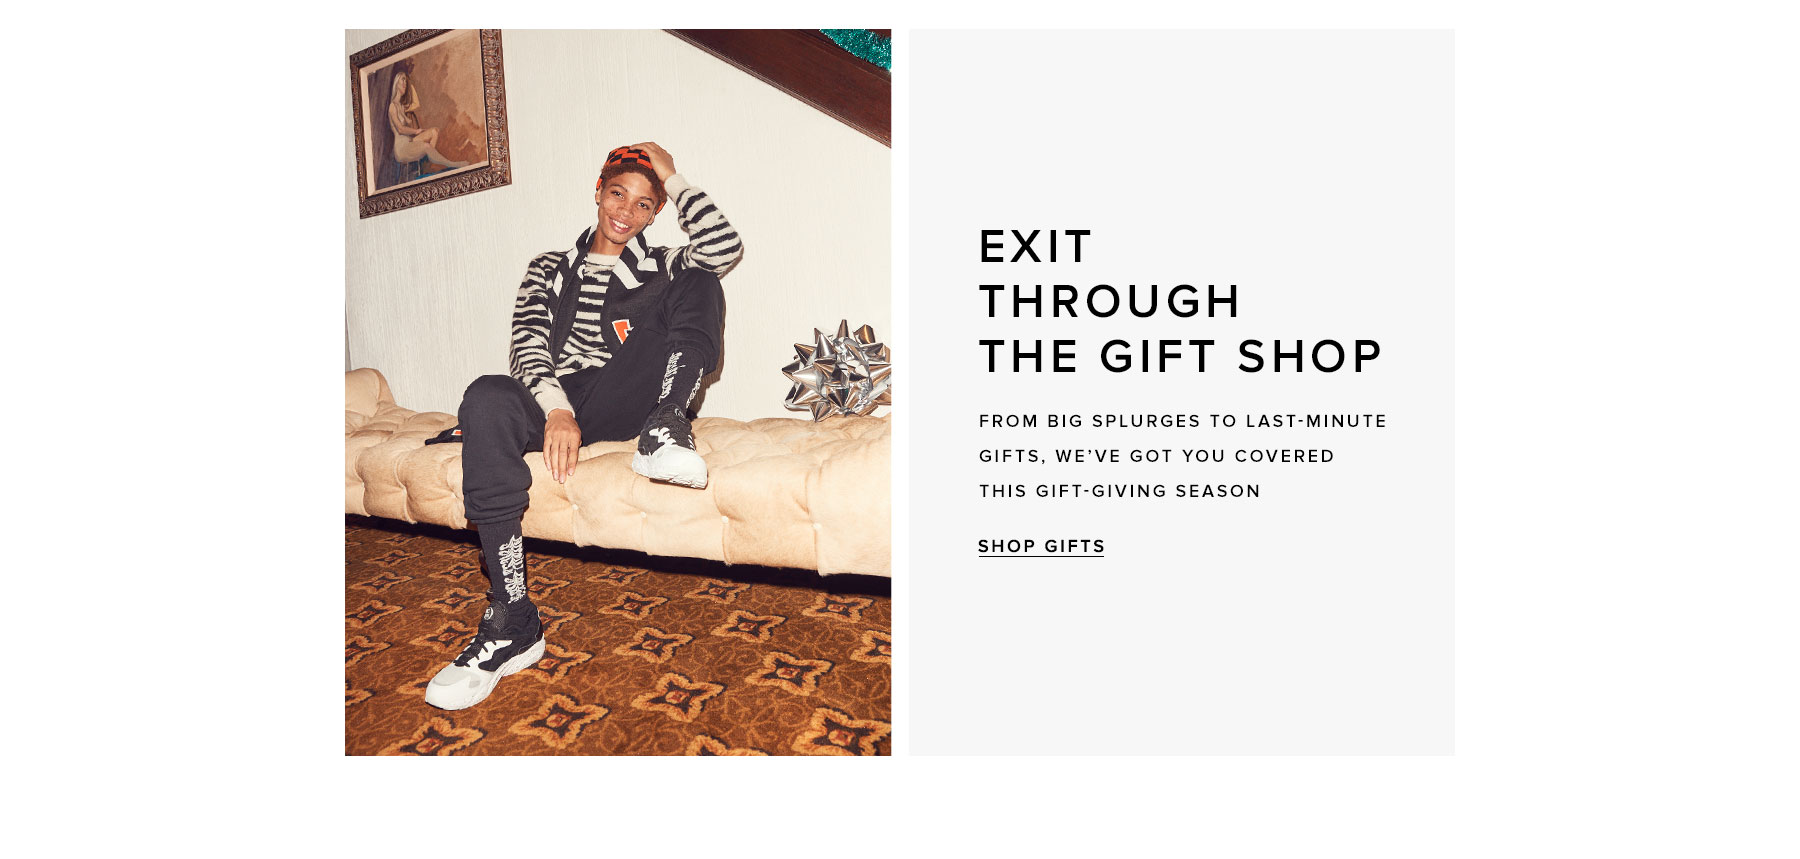 Exit through the gift shop. From big splurges to last-minute gifts, we've got you covered this gift-giving season. Shop gifts.